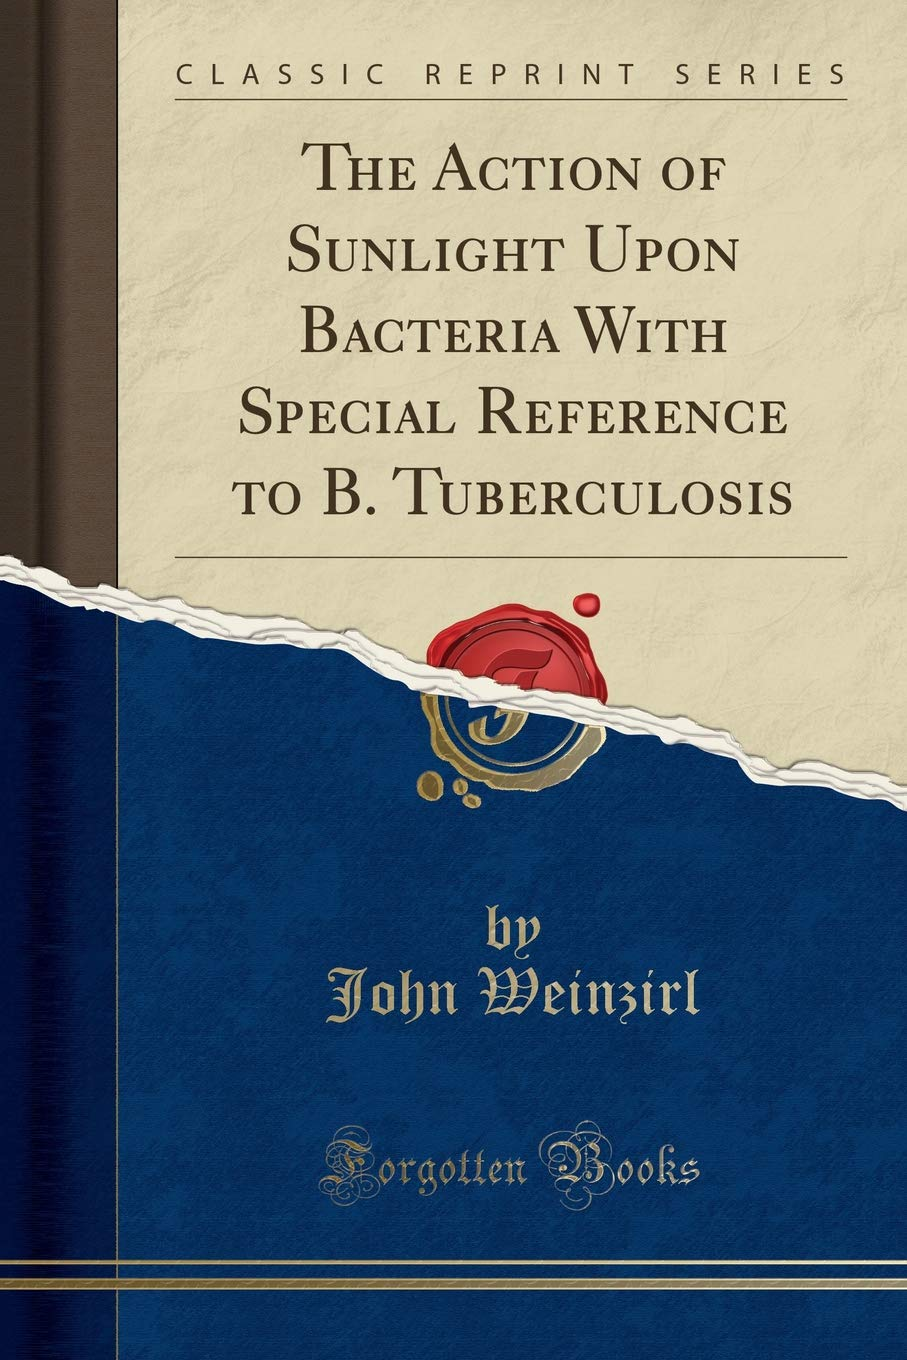 Read Online The Action of Sunlight Upon Bacteria With Special Reference to B. Tuberculosis (Classic Reprint) PDF